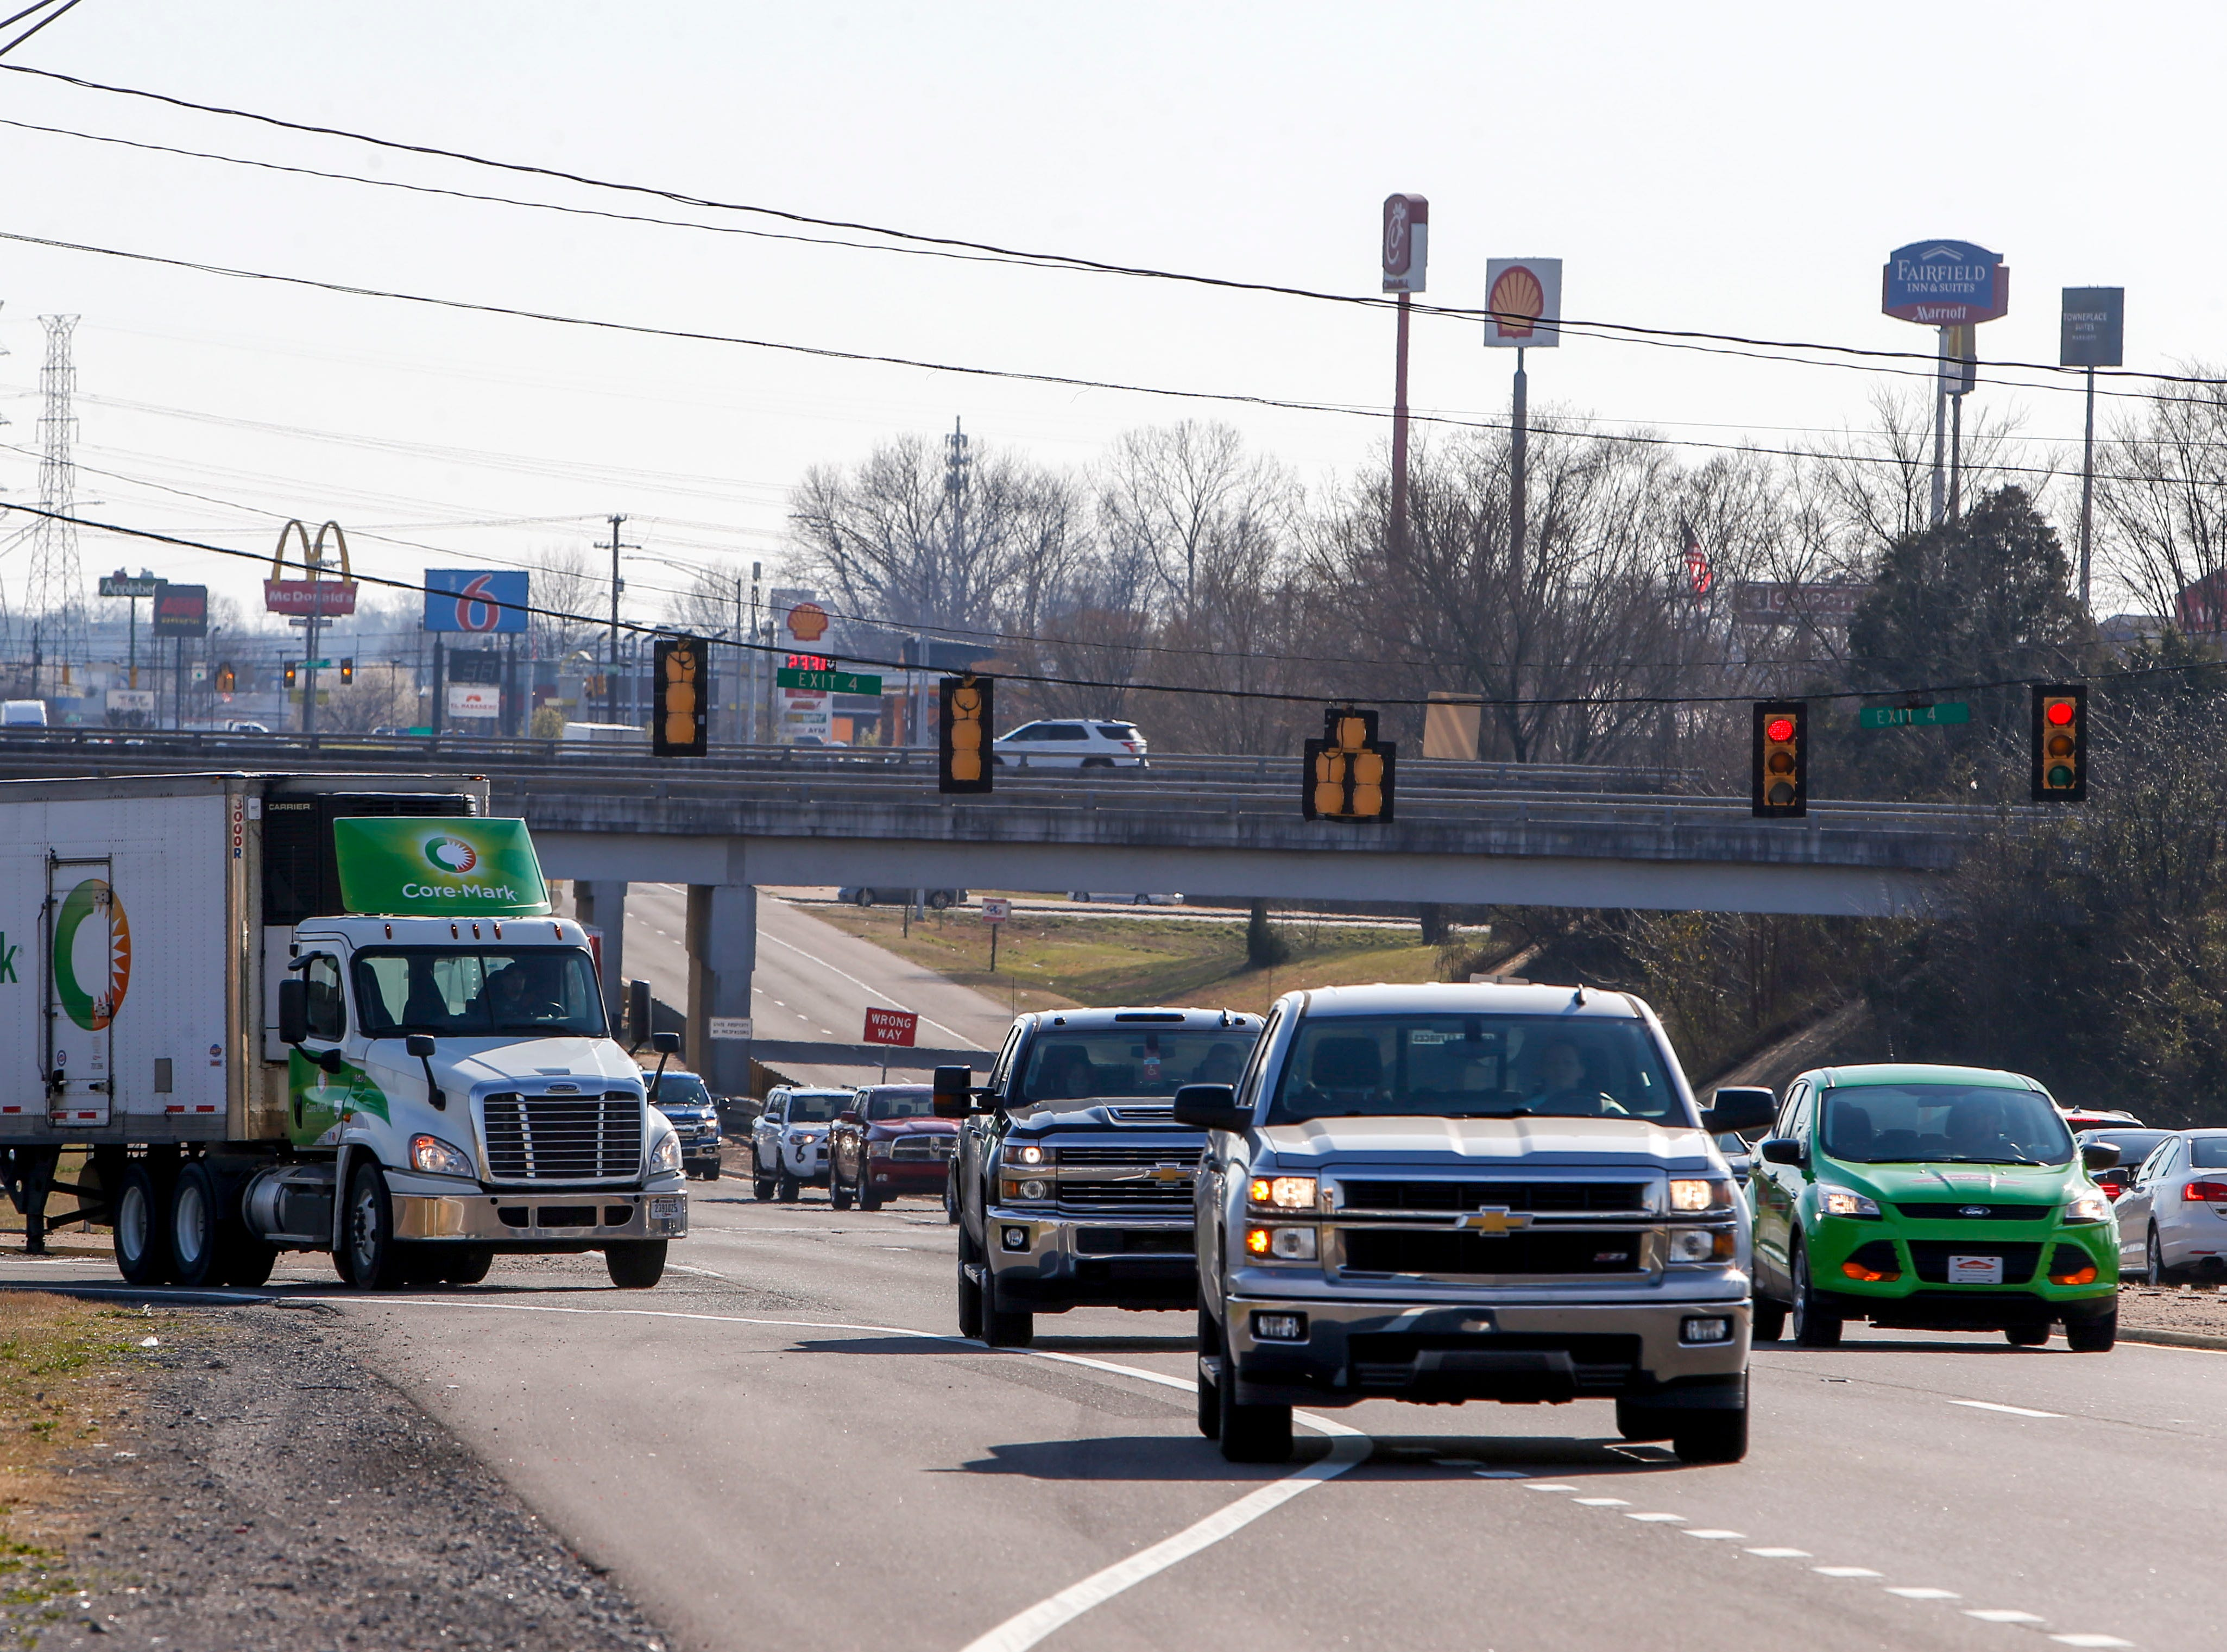 Traffic lines up down Wilma Rudolph Blvd at Wilma Rudolph Blvd at the I-24 overpass in Clarksville, Tenn., on Tuesday, March 19, 2019.